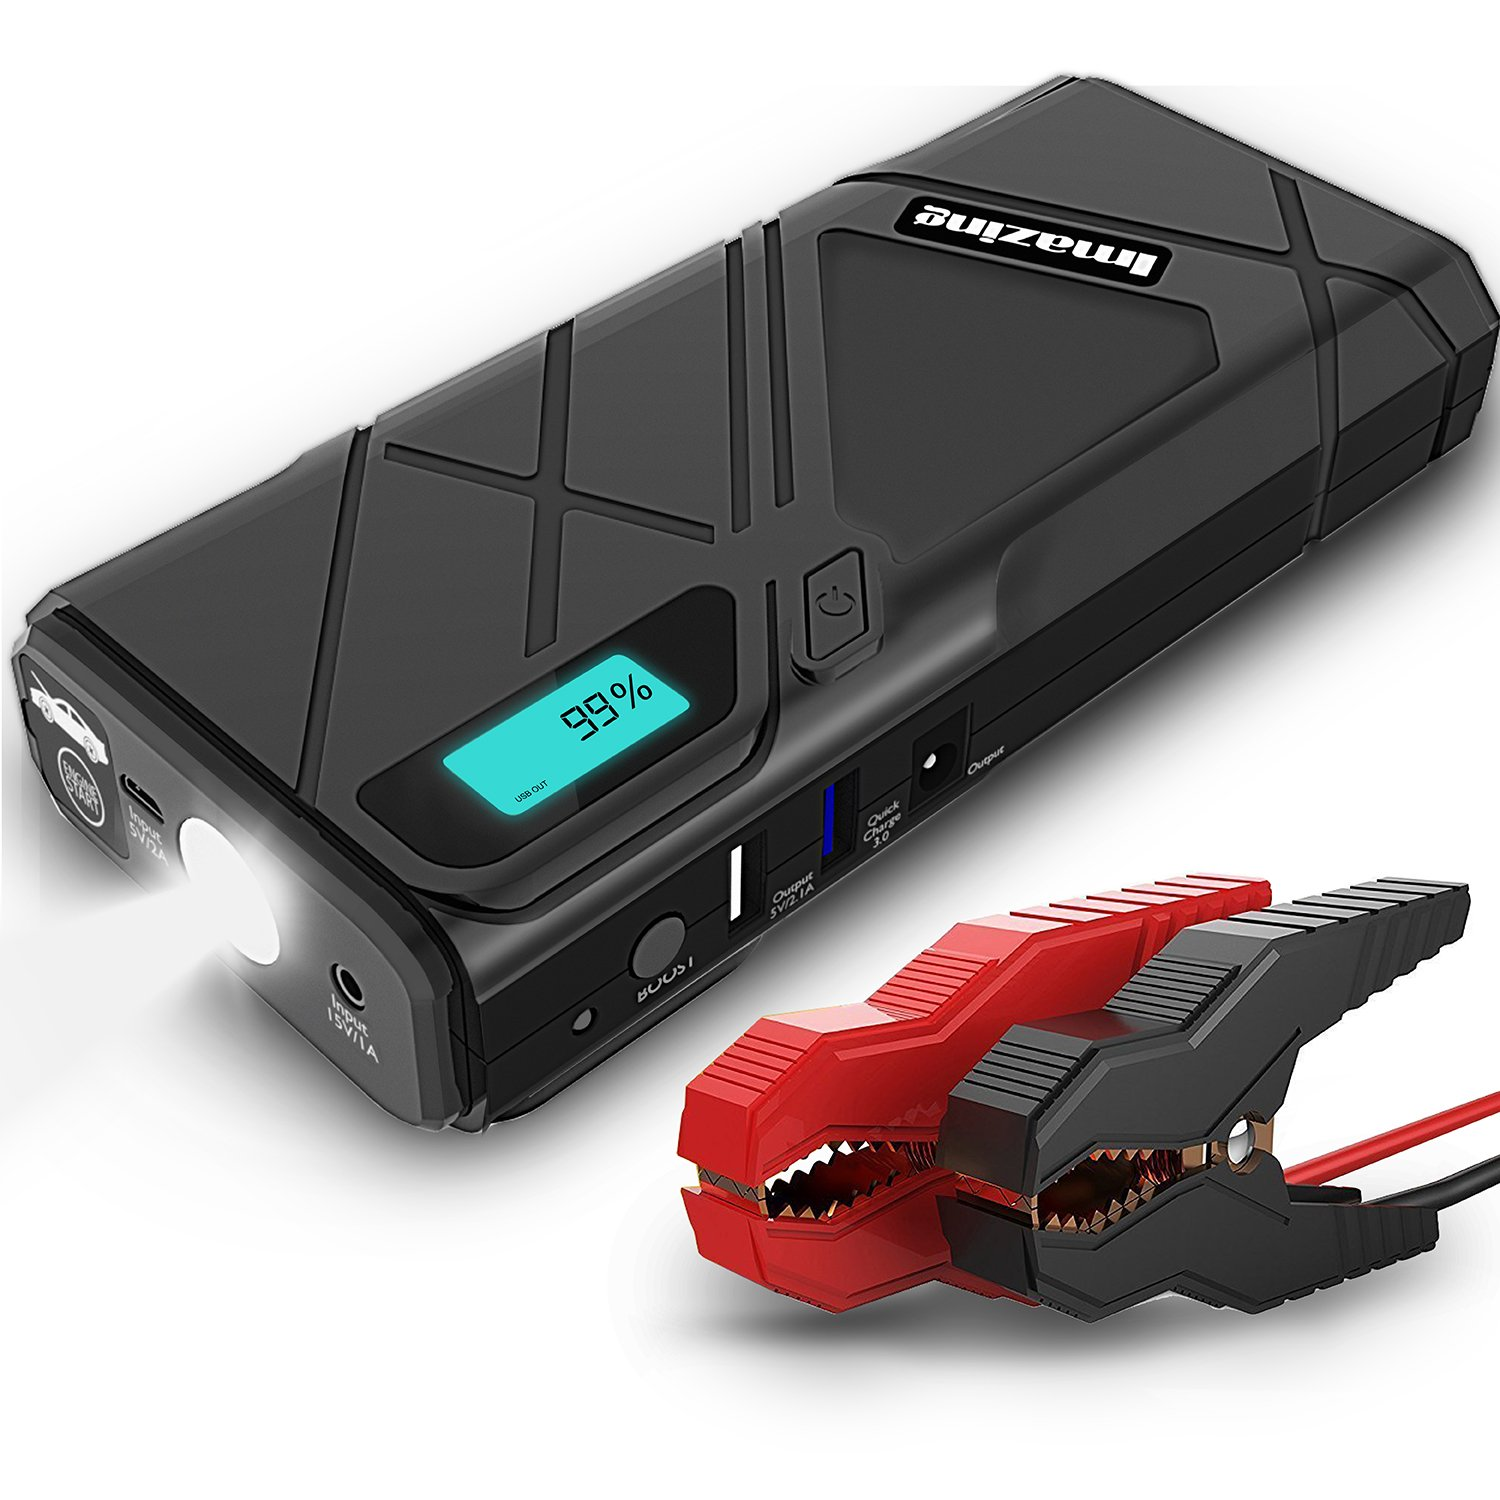 Imazing Portable Car Jump Starter – 1500A Peak 12000mAH (Up To 8L Gas Or 6L Diesel Engine) 12V Auto Battery Booster Portable Power Pack With Smart Jumper Cables, IM23